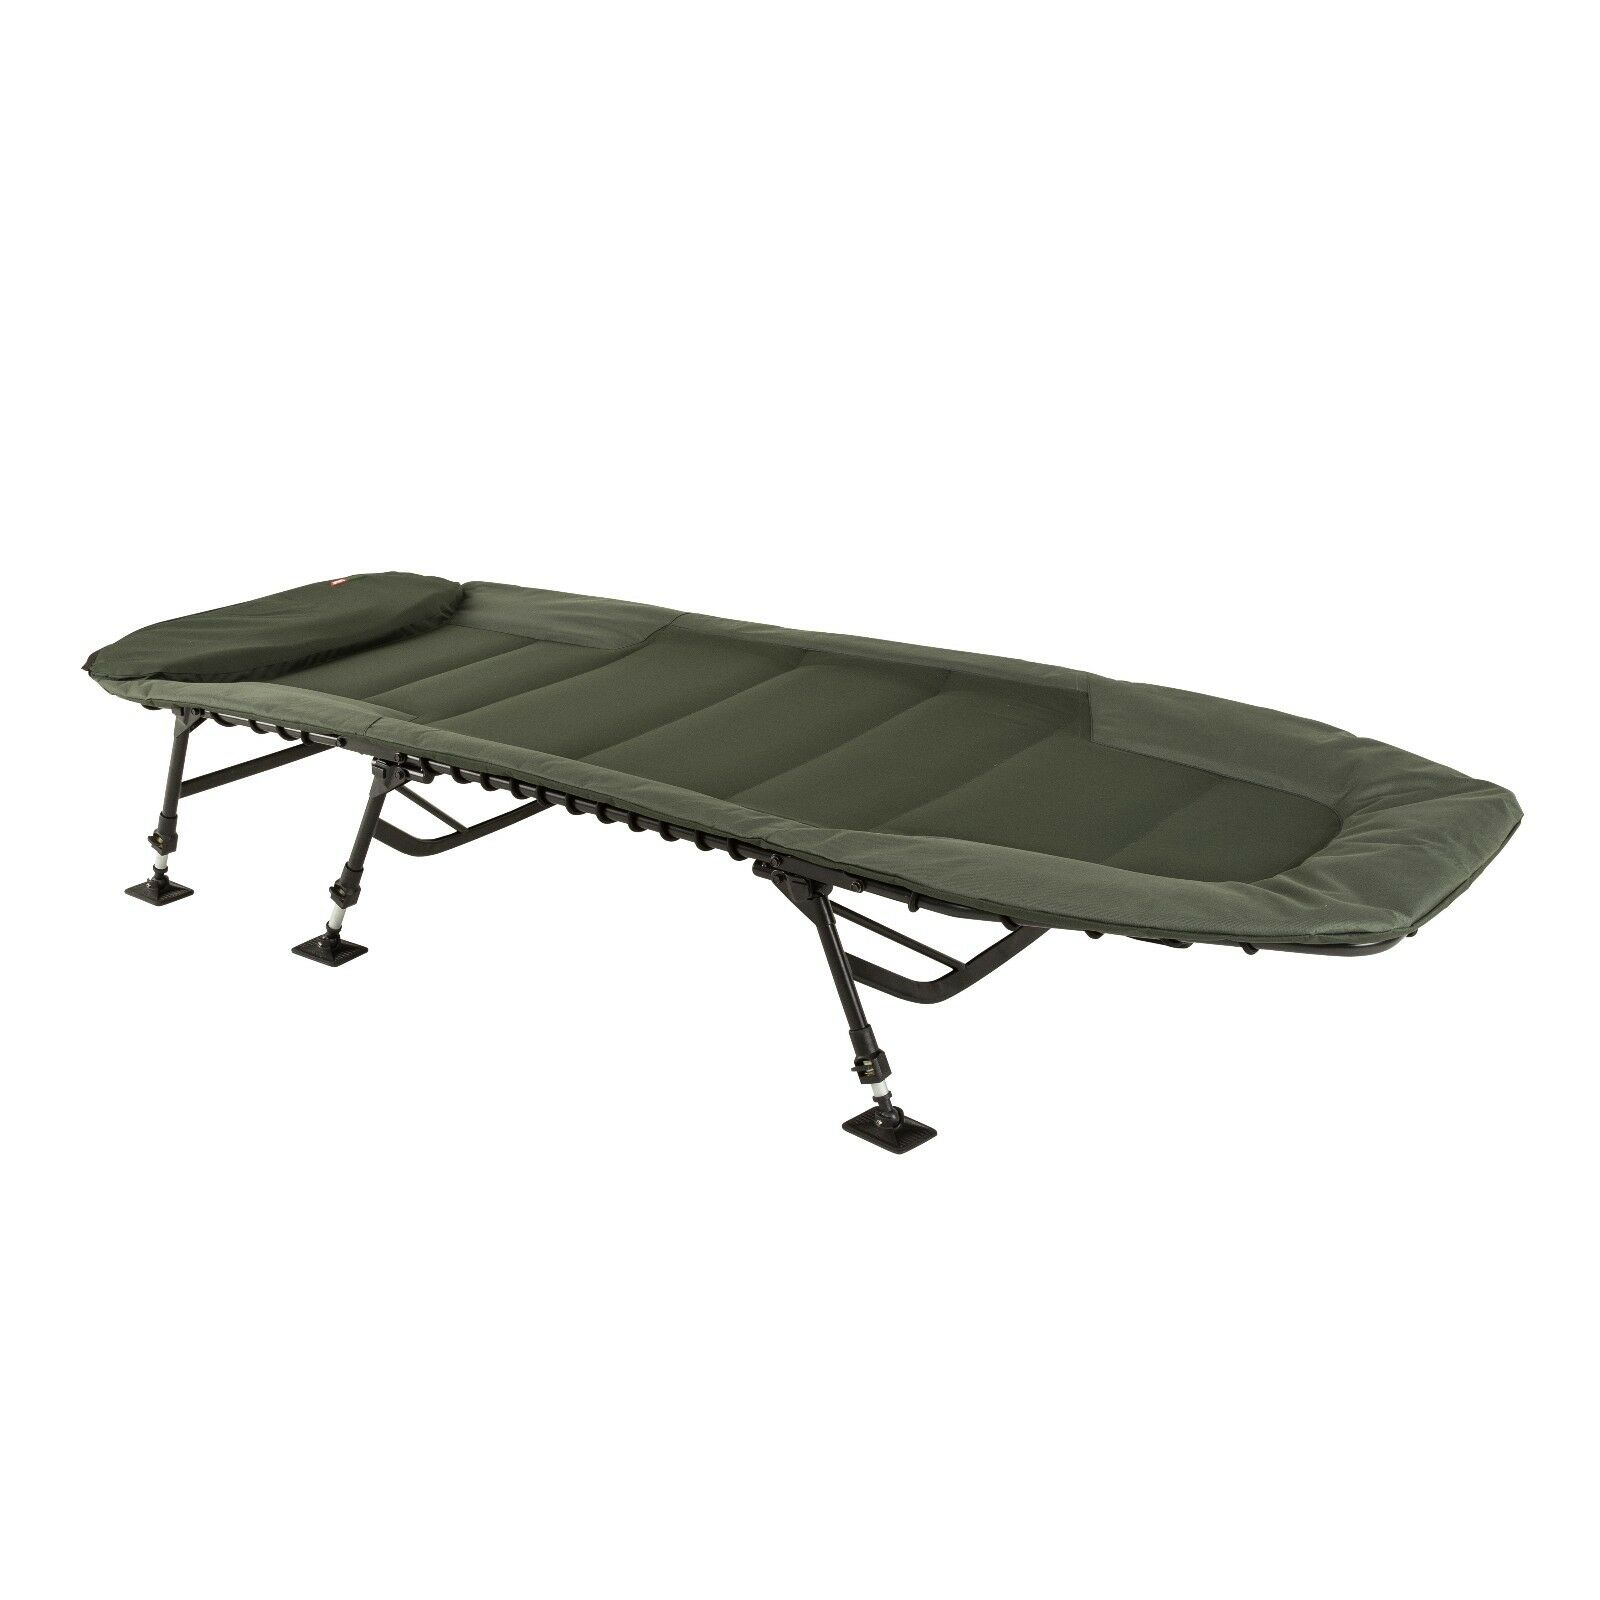 JRC Defender Levelbed Brand New 2018 - Free Delivery